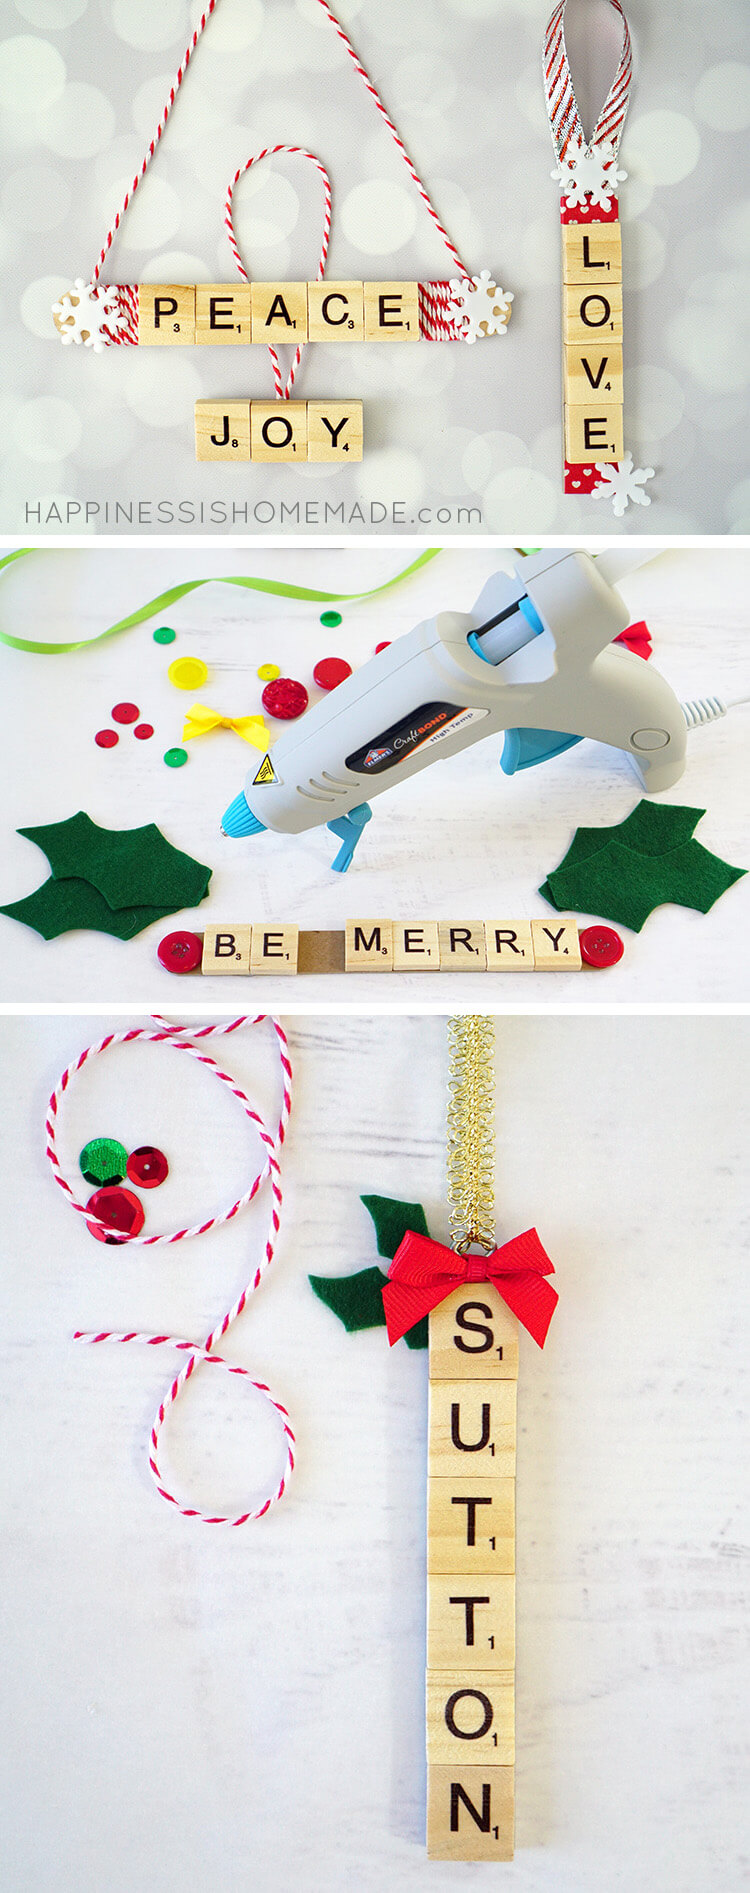 These Scrabble Tile Christmas Ornaments are a quick and easy holiday craft, and they make a great DIY homemade Christmas gift idea, too!